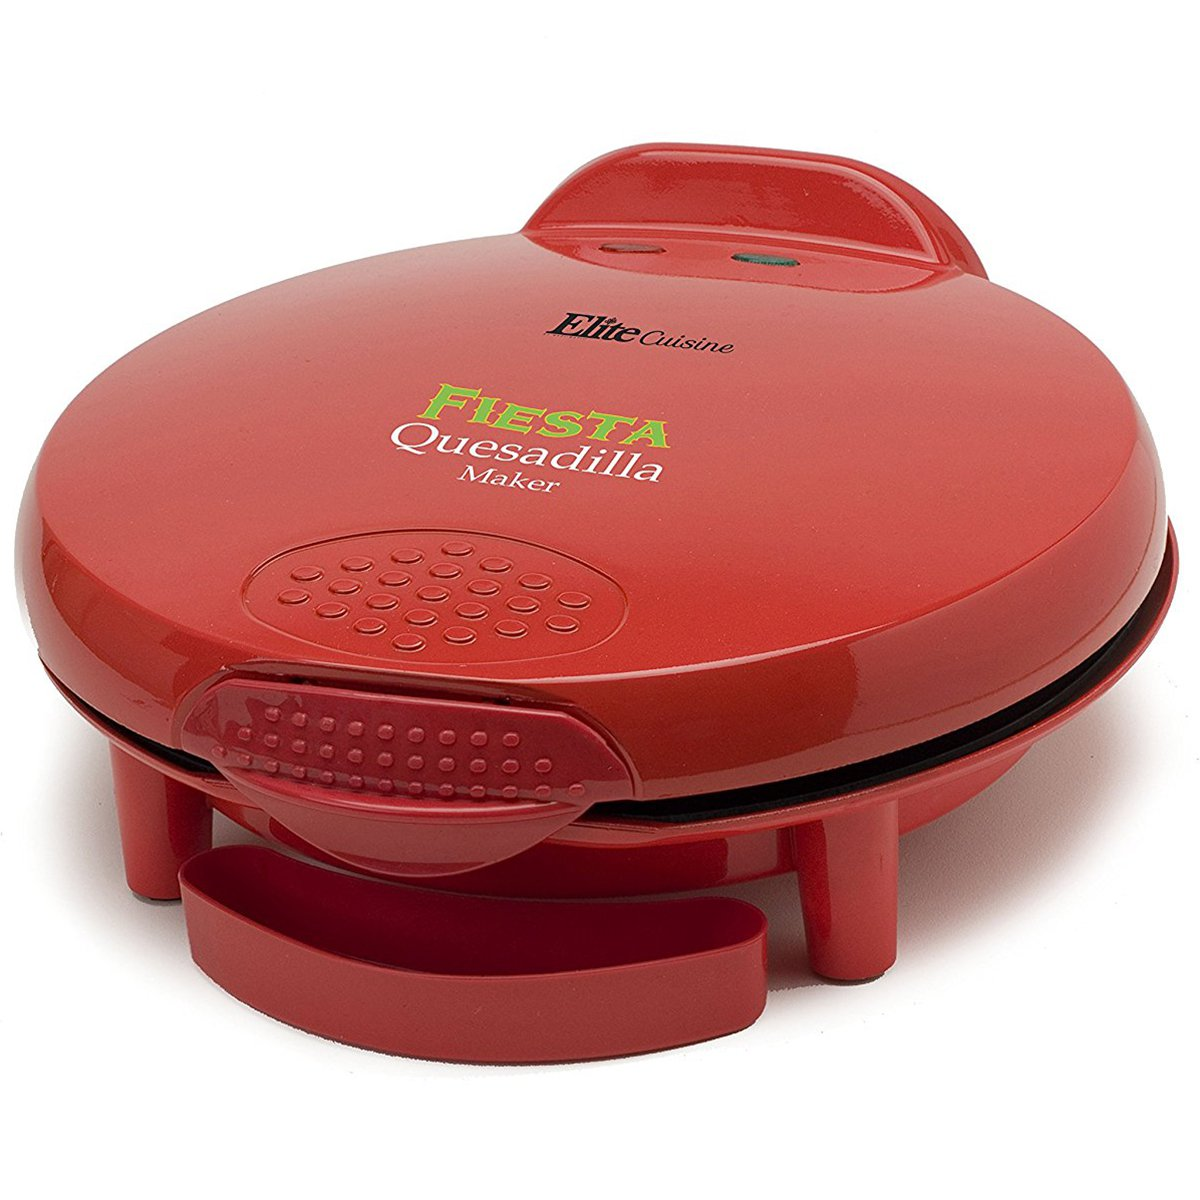 "Elite Cuisine 12"" Quesadilla Maker"